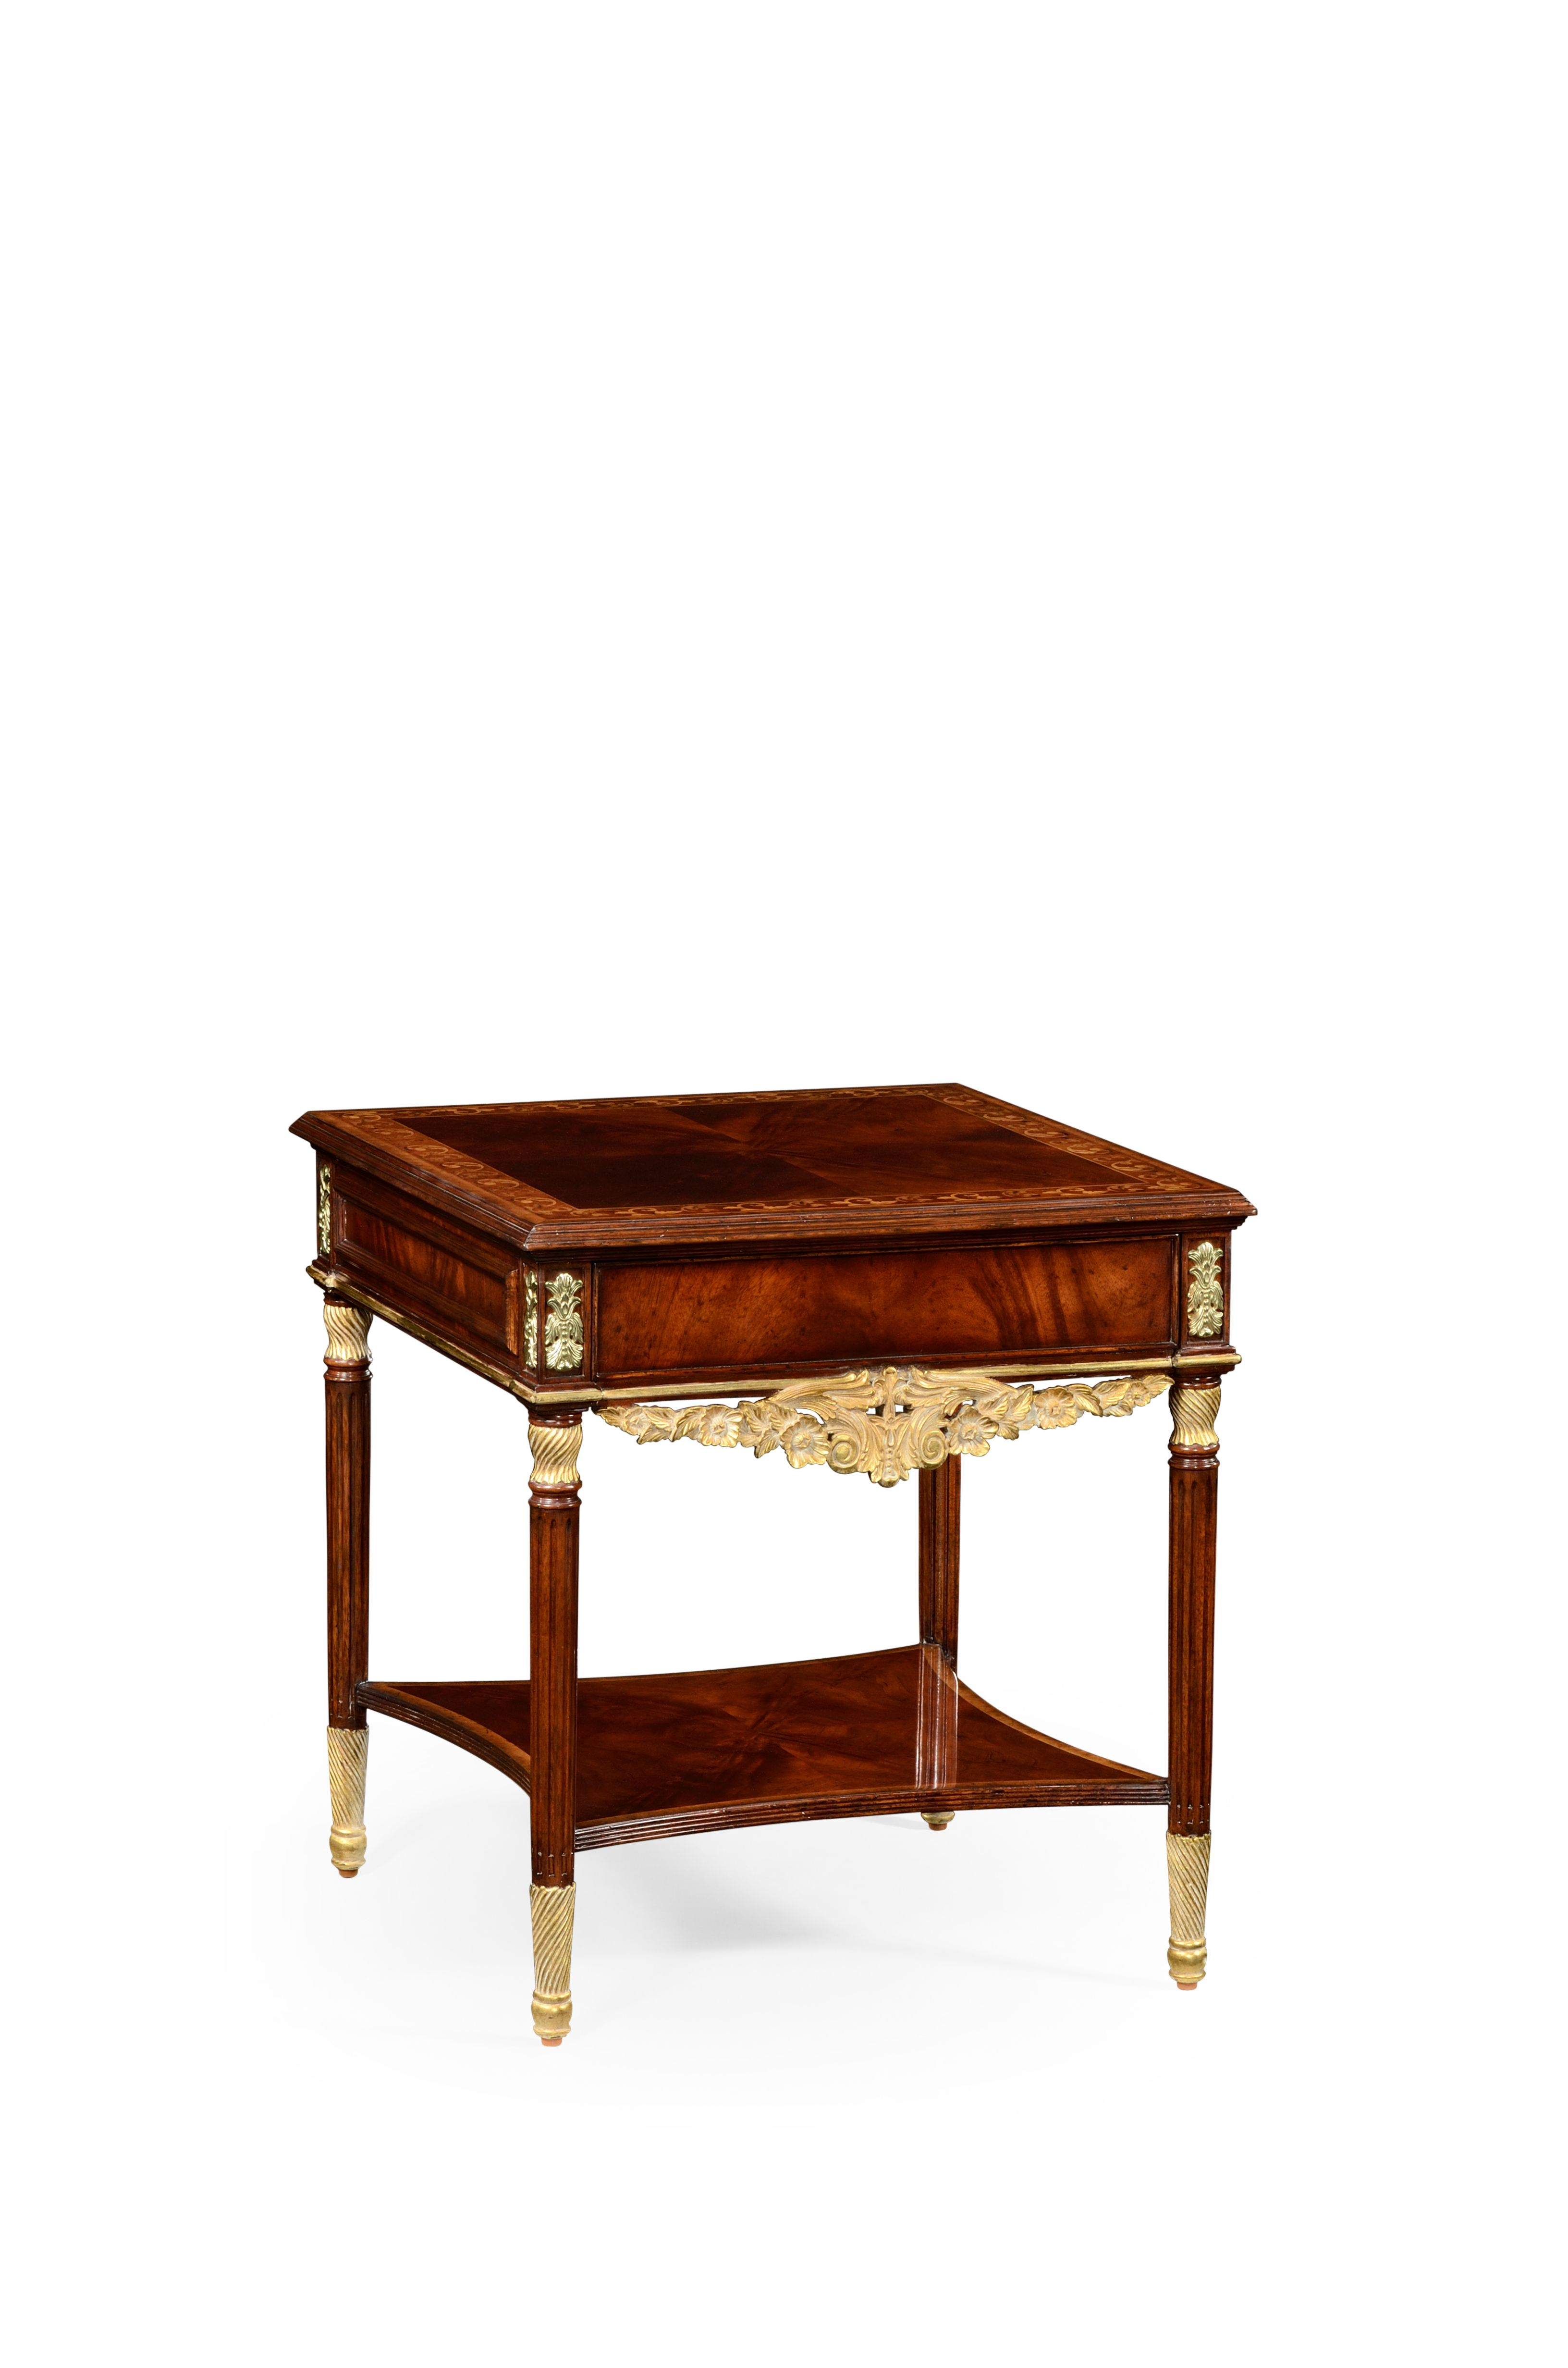 Louis IV style mahogany & gilded square side table